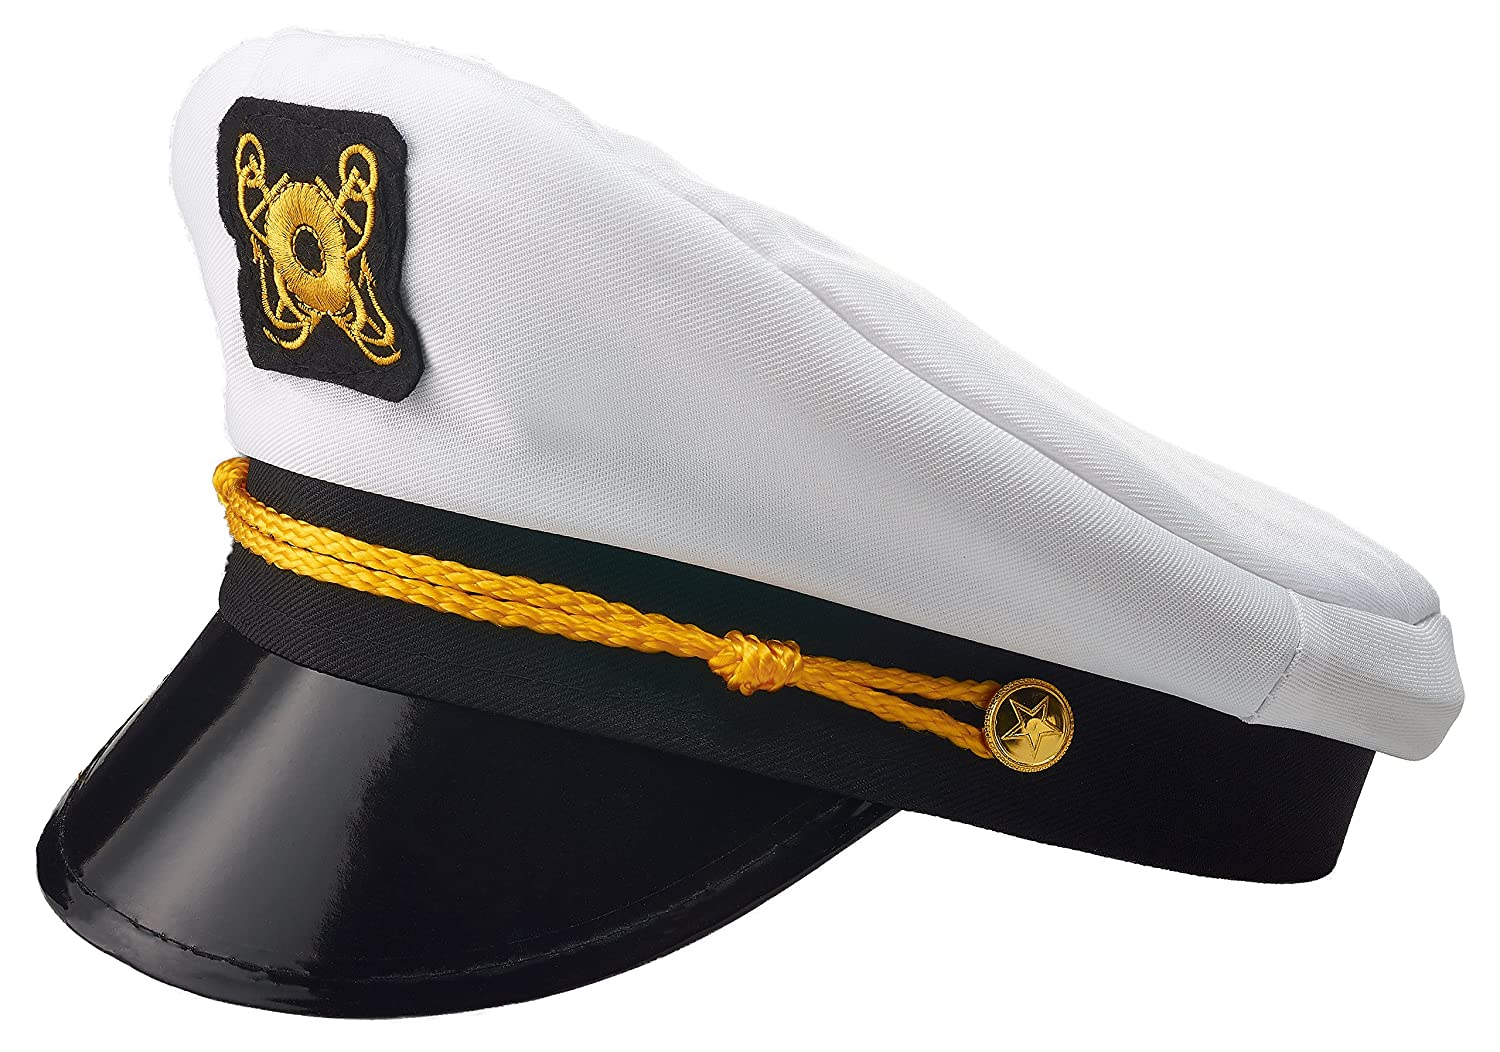 NJ Novelty Yacht Captain Hat, Boat Sailor Ship Skipper Cap Adult Costume Accessory